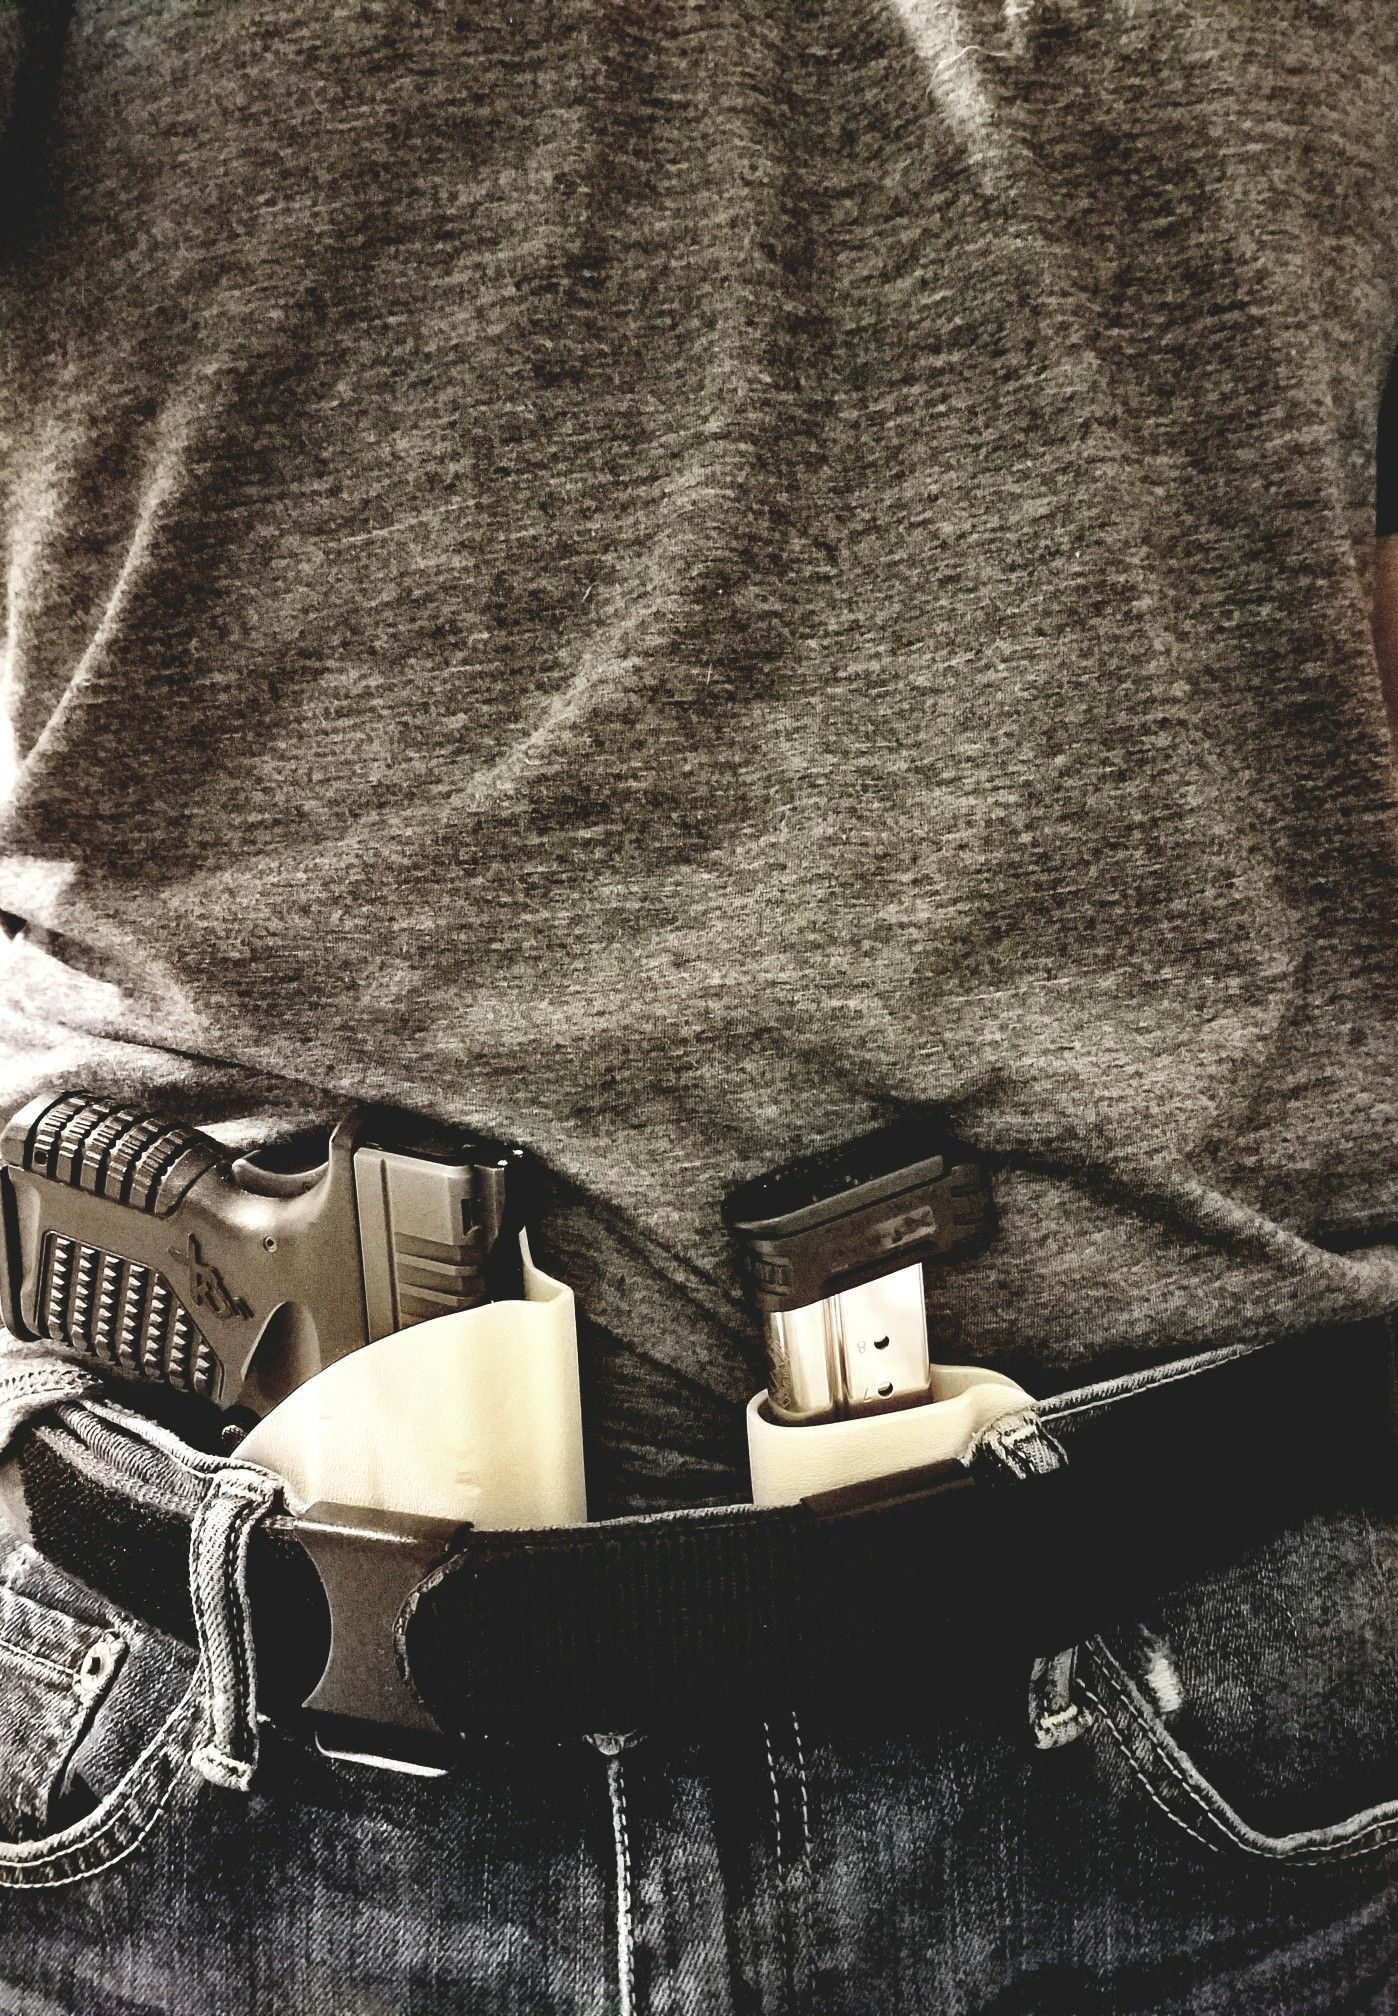 Concealed appendix carry with vedder lighttuck and magtuck